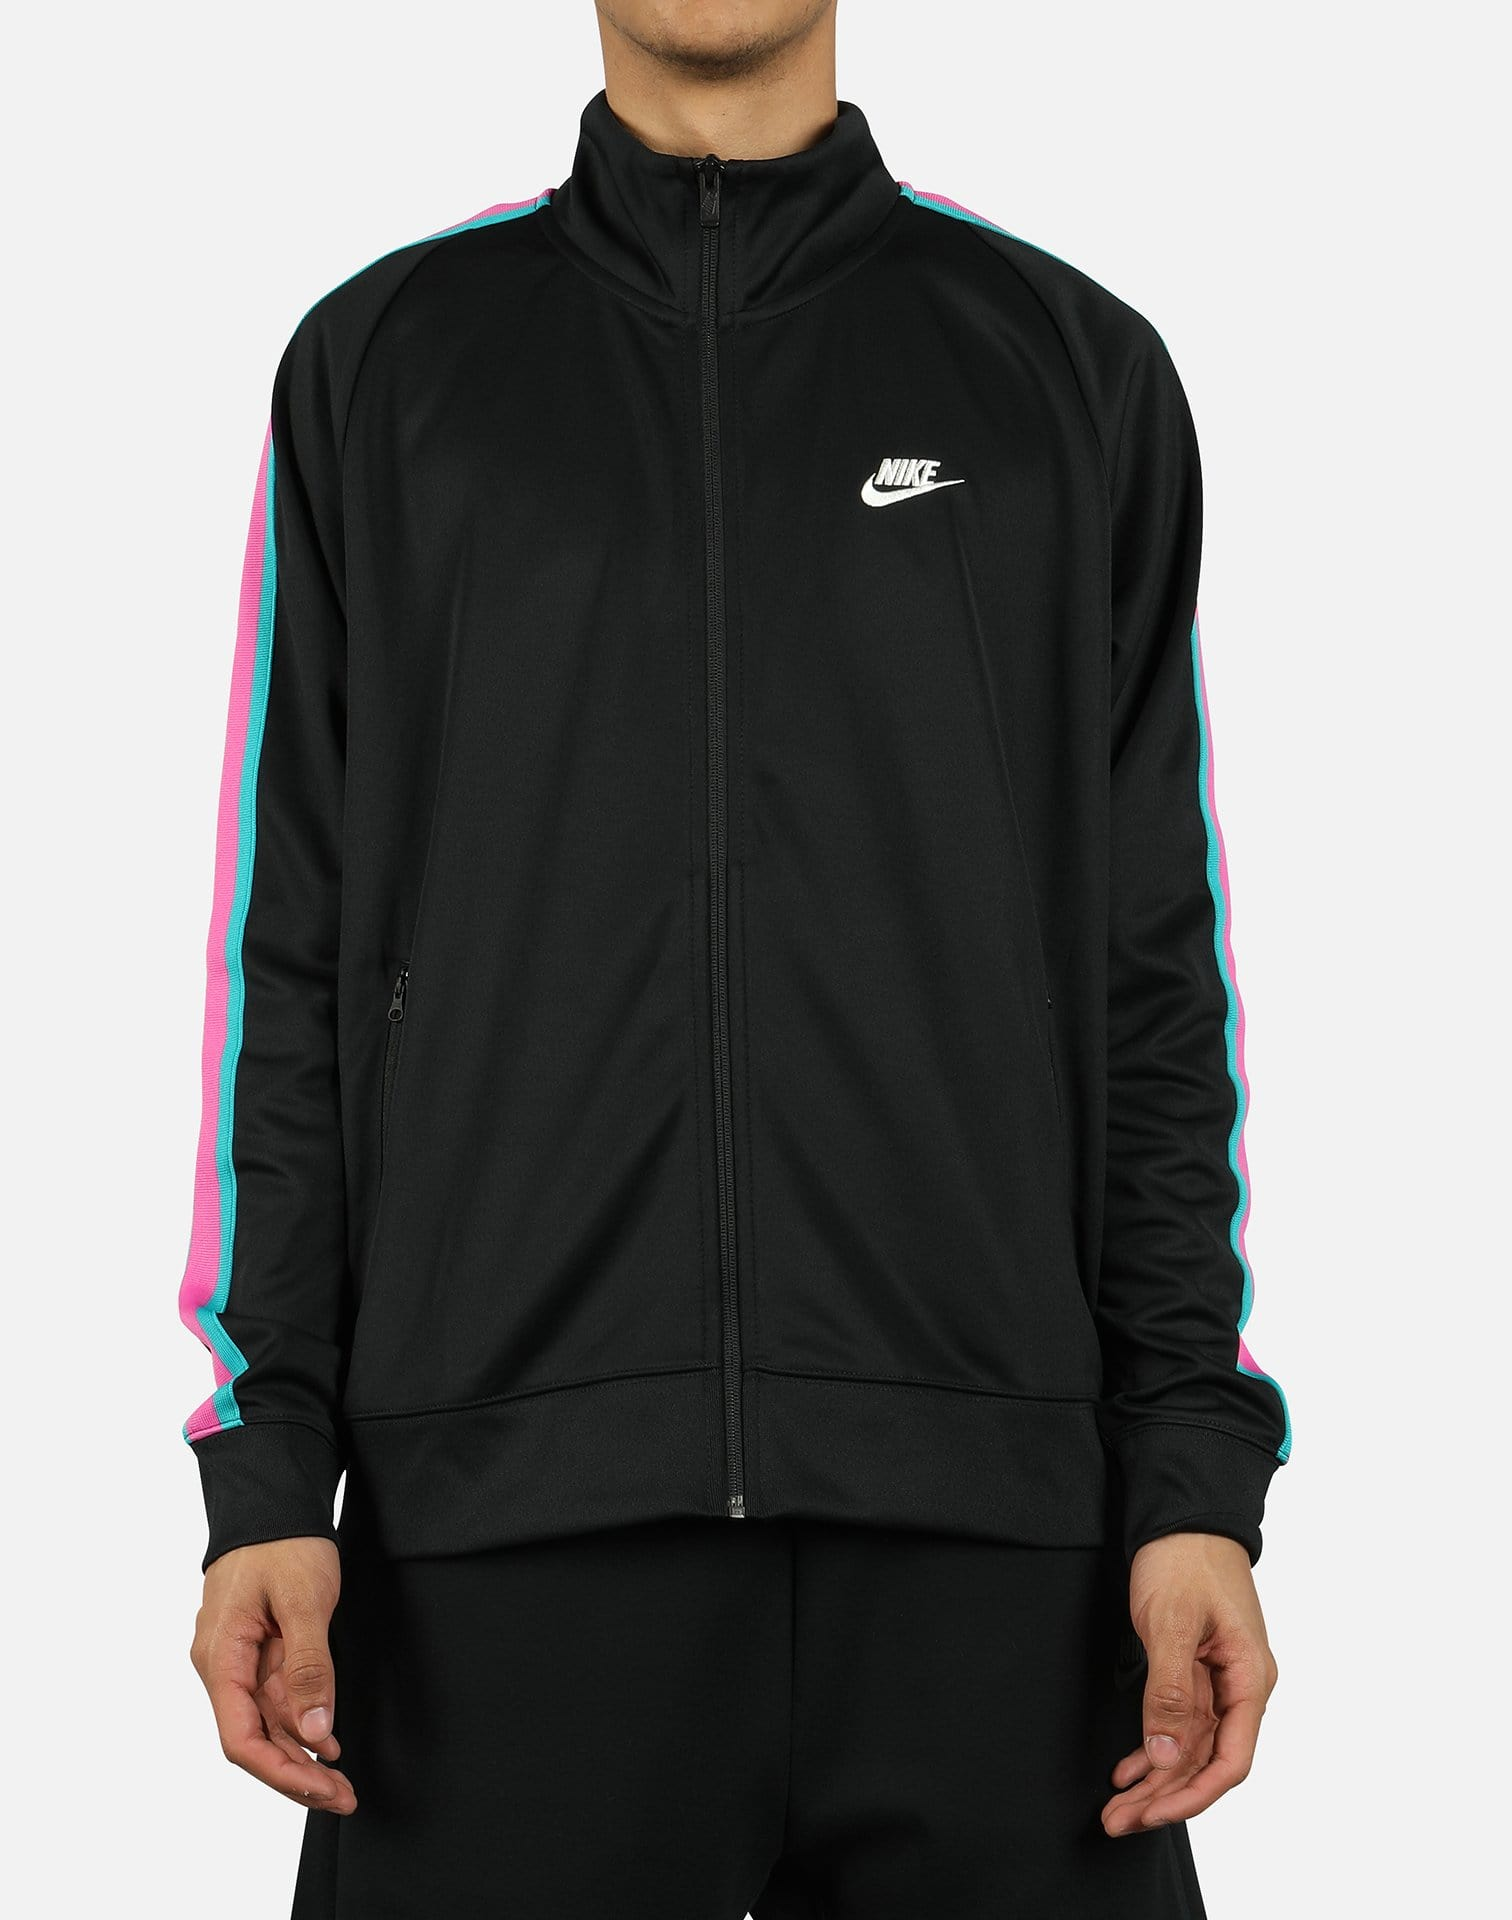 NSW N98 KNIT WARM-UP JACKET